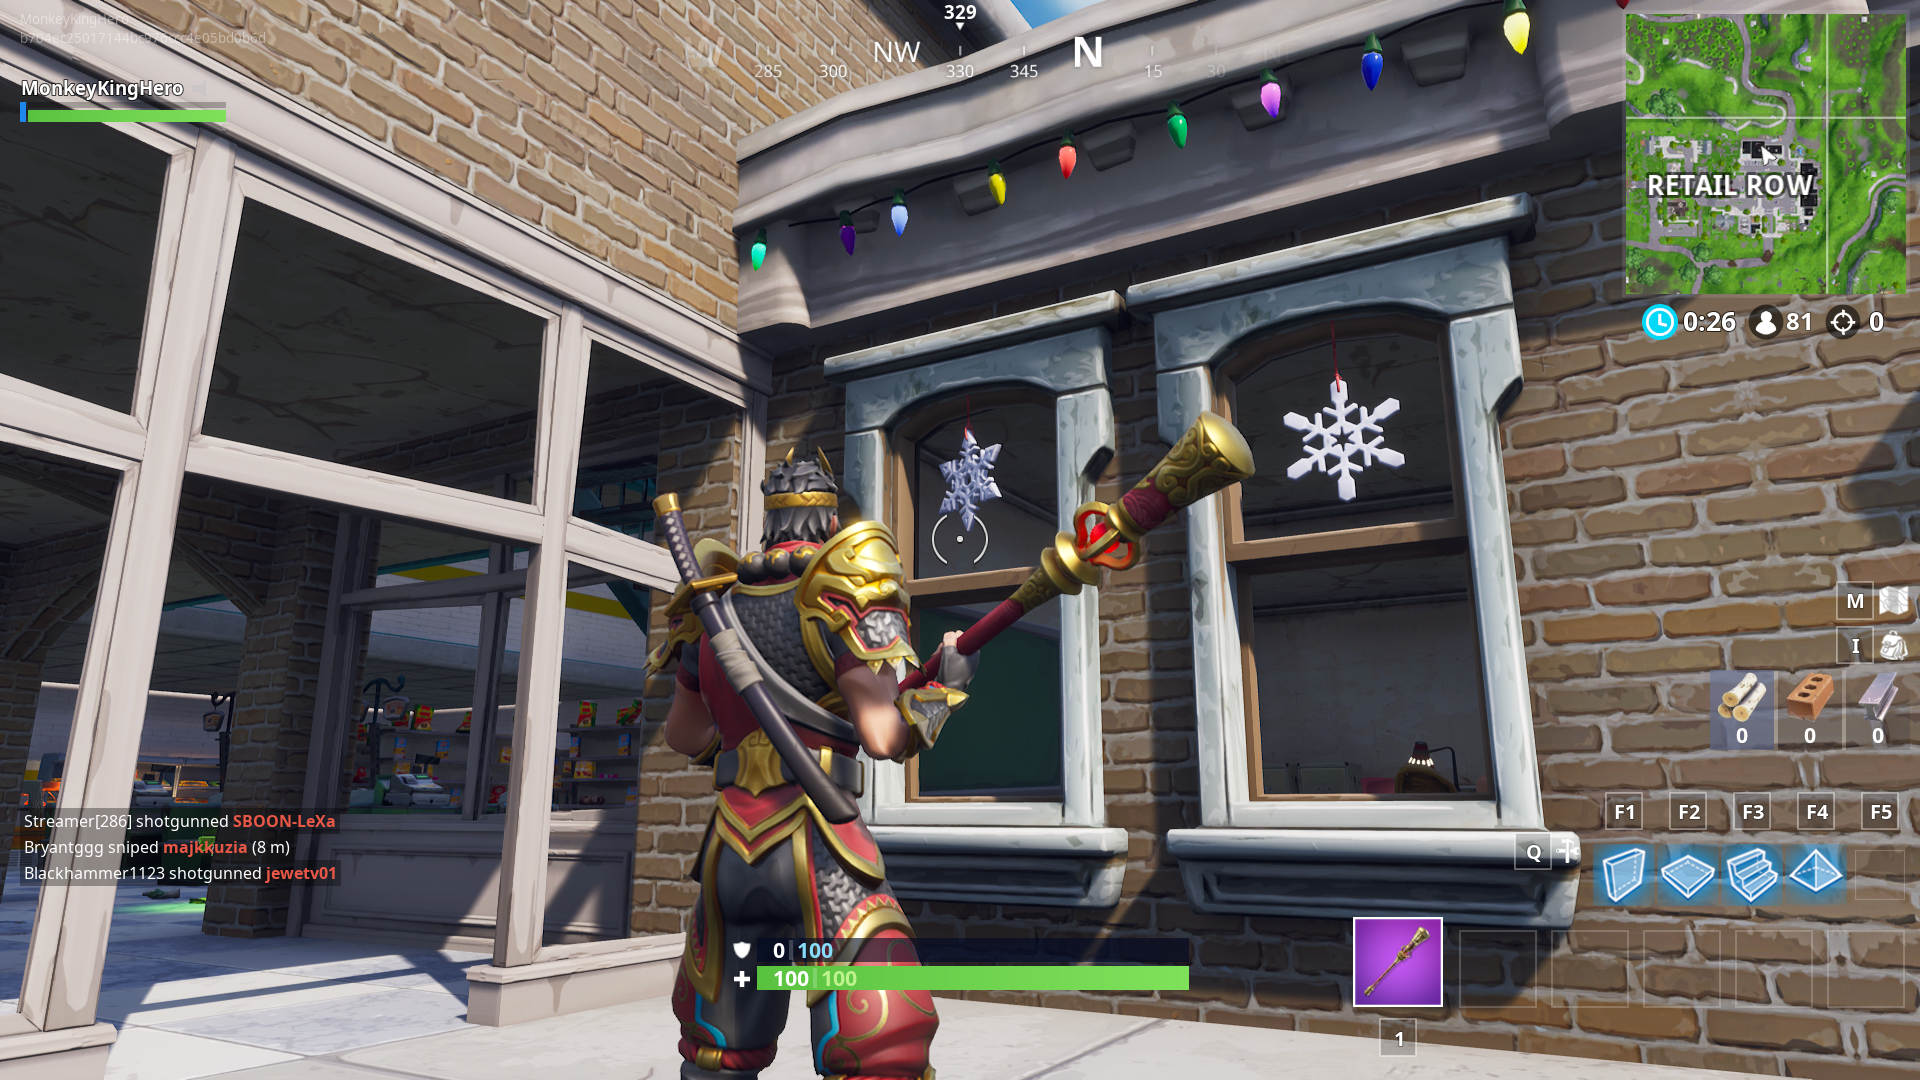 Where Are All The Snowflakes In Fortnite Chapter 2 How To Complete The Destroy Snowflake Decorations 14 Days Of Fortnite Challenge Dot Esports